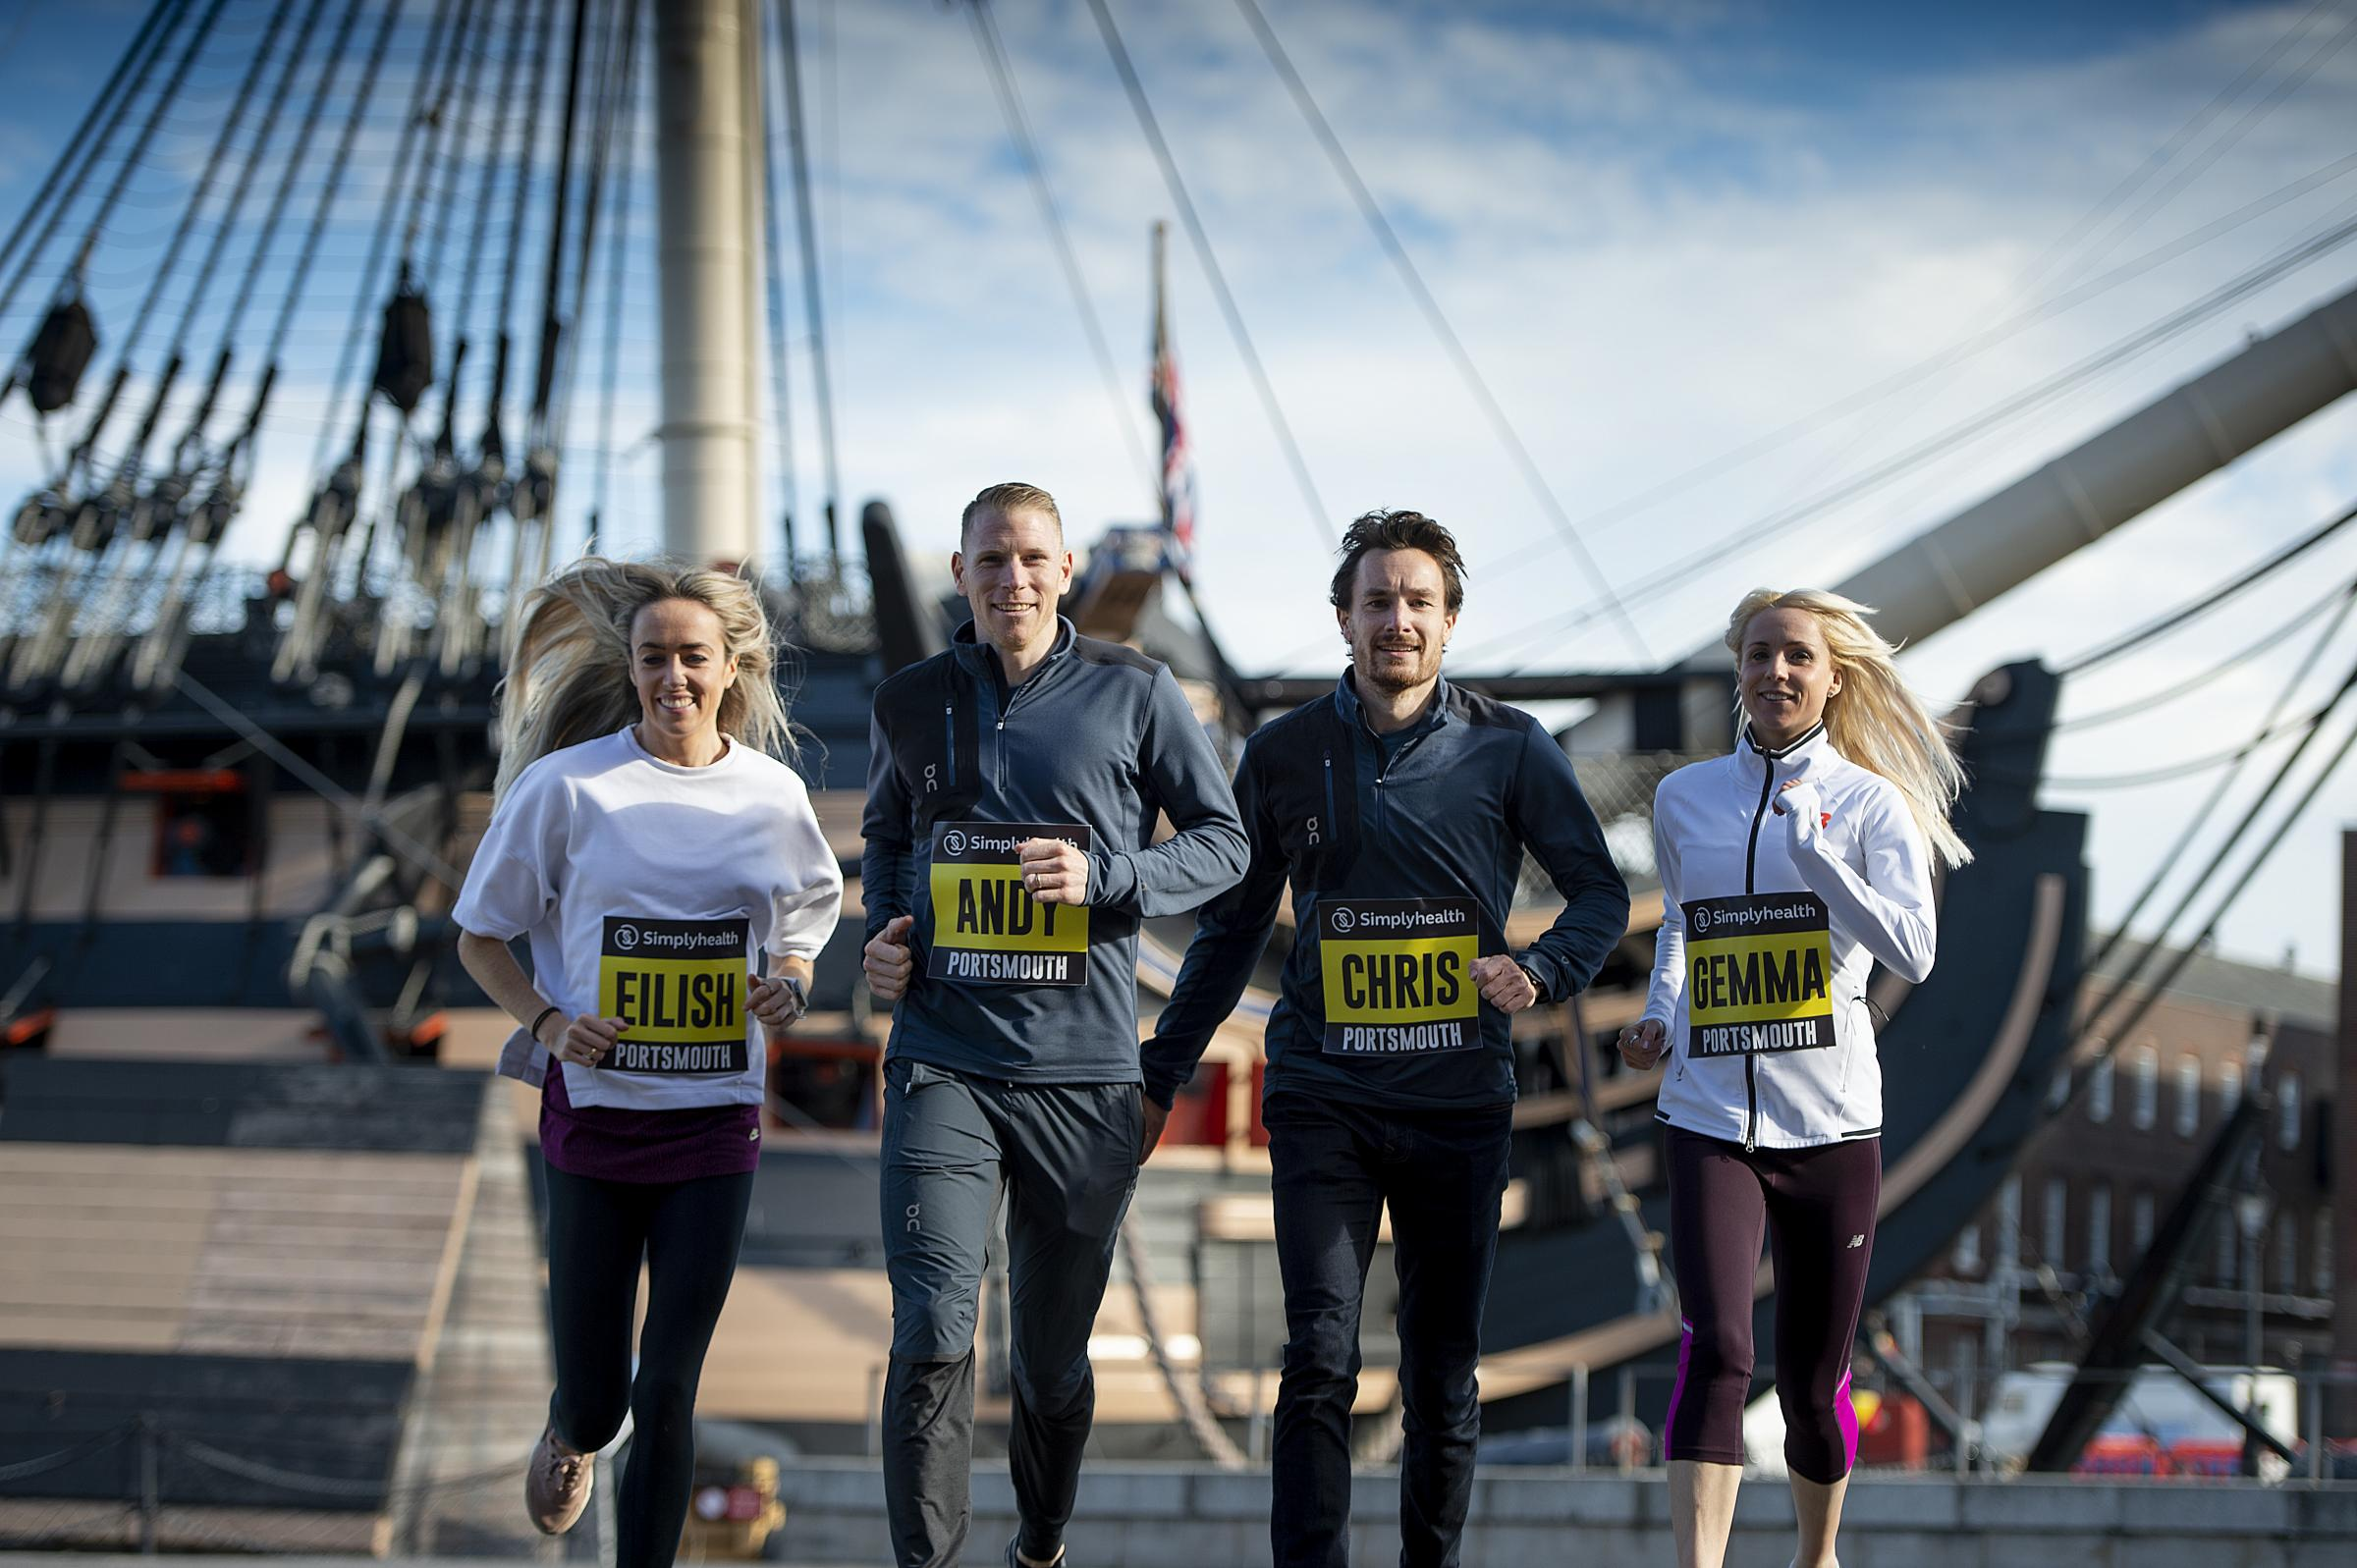 Eilish McColgan, Andy Vernon, Chris Thompson and Gemma Steel at the press launch of the 2018 Great South Run at the Historic Dockyard today (Photo by Pete Langdown)